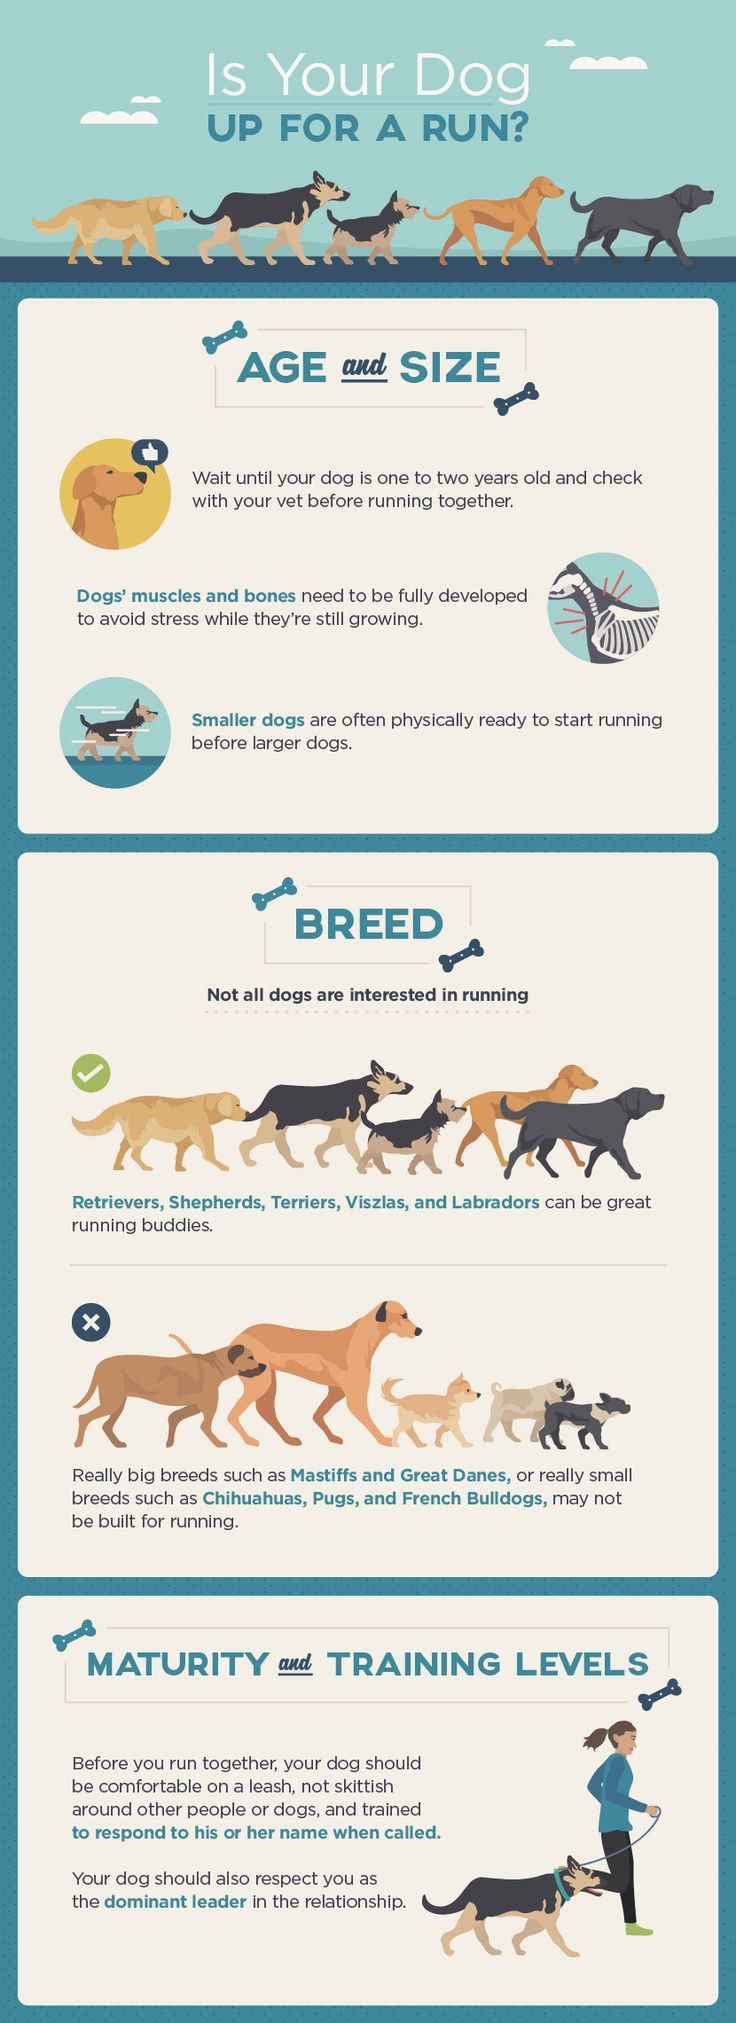 Running With Your Dog: Is Your Dog Up For a Run?